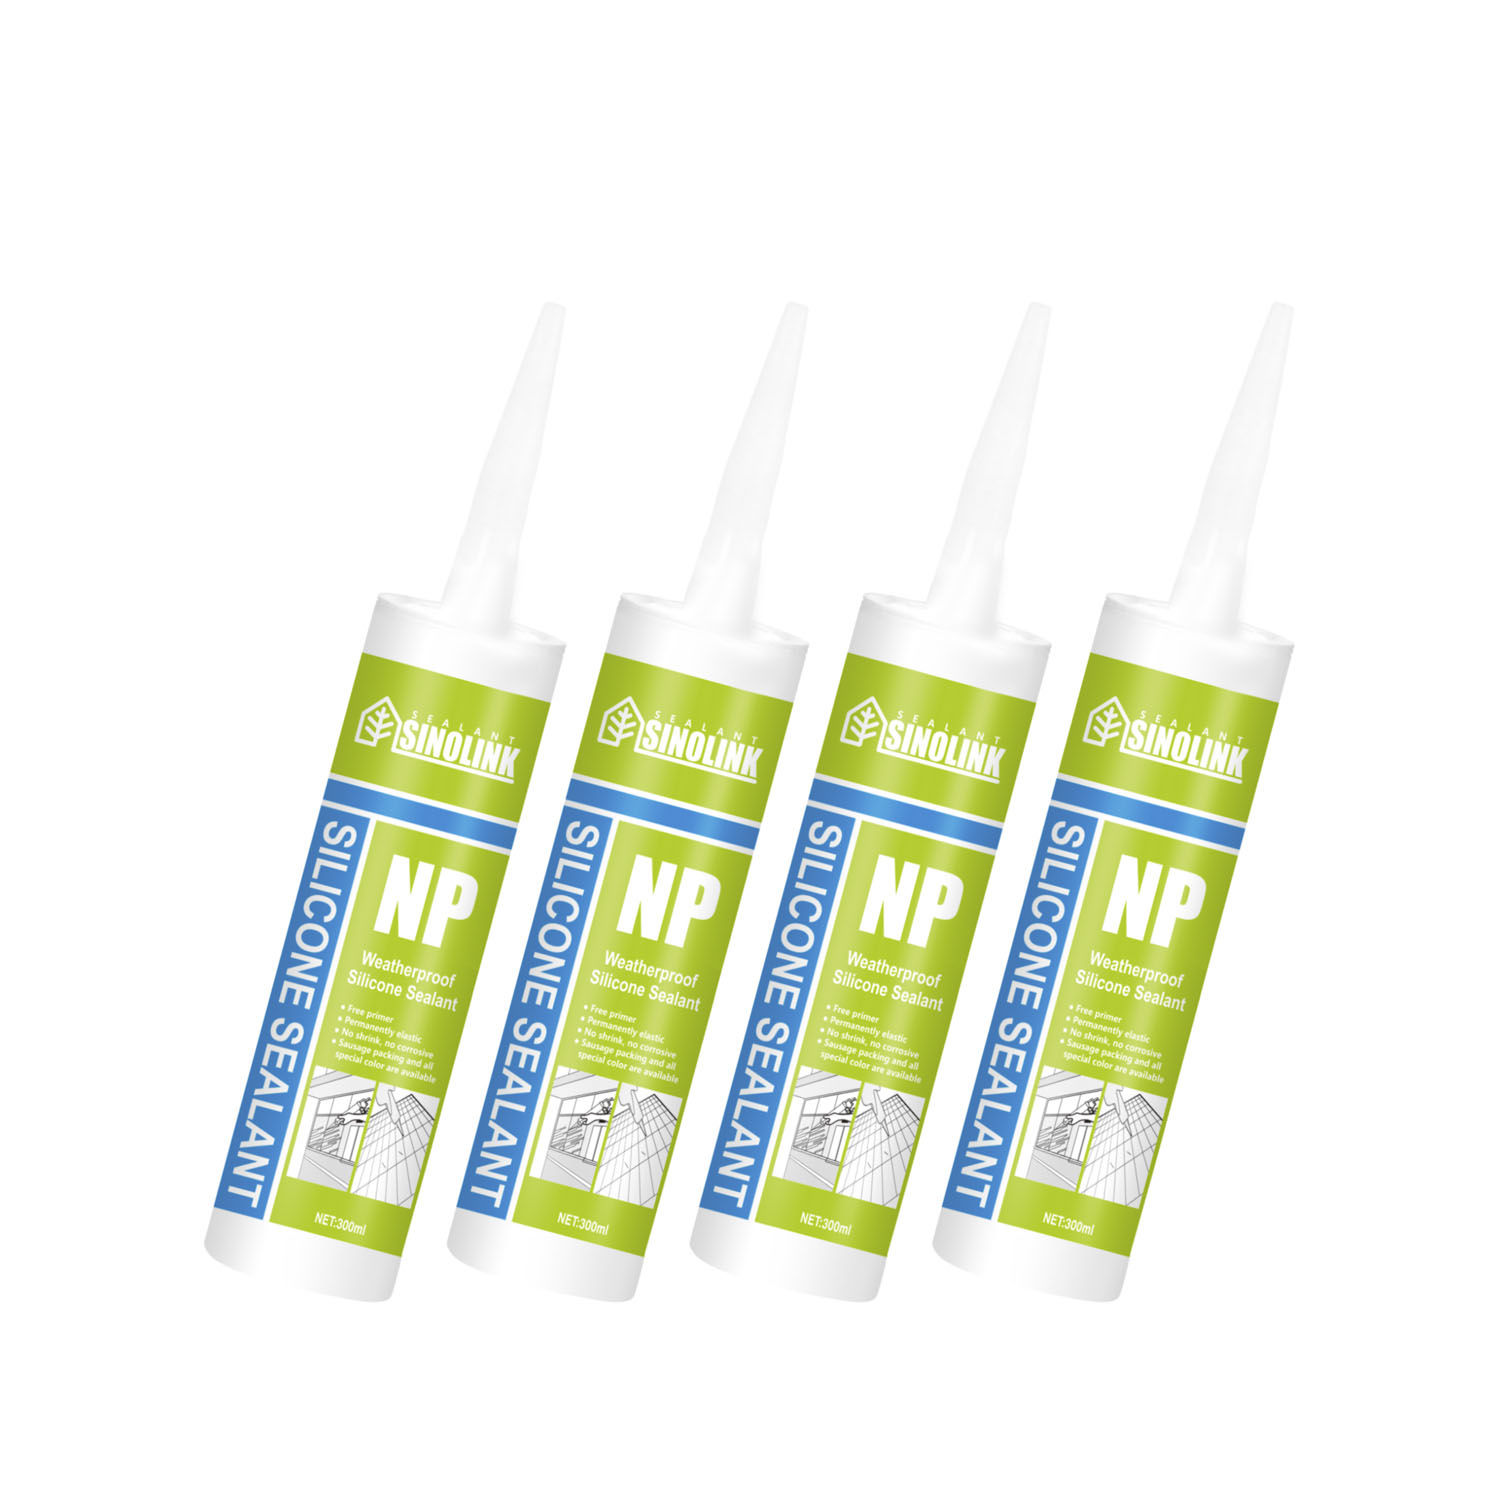 silicone fireproof sealant as glue and adhesive cartridge for windows